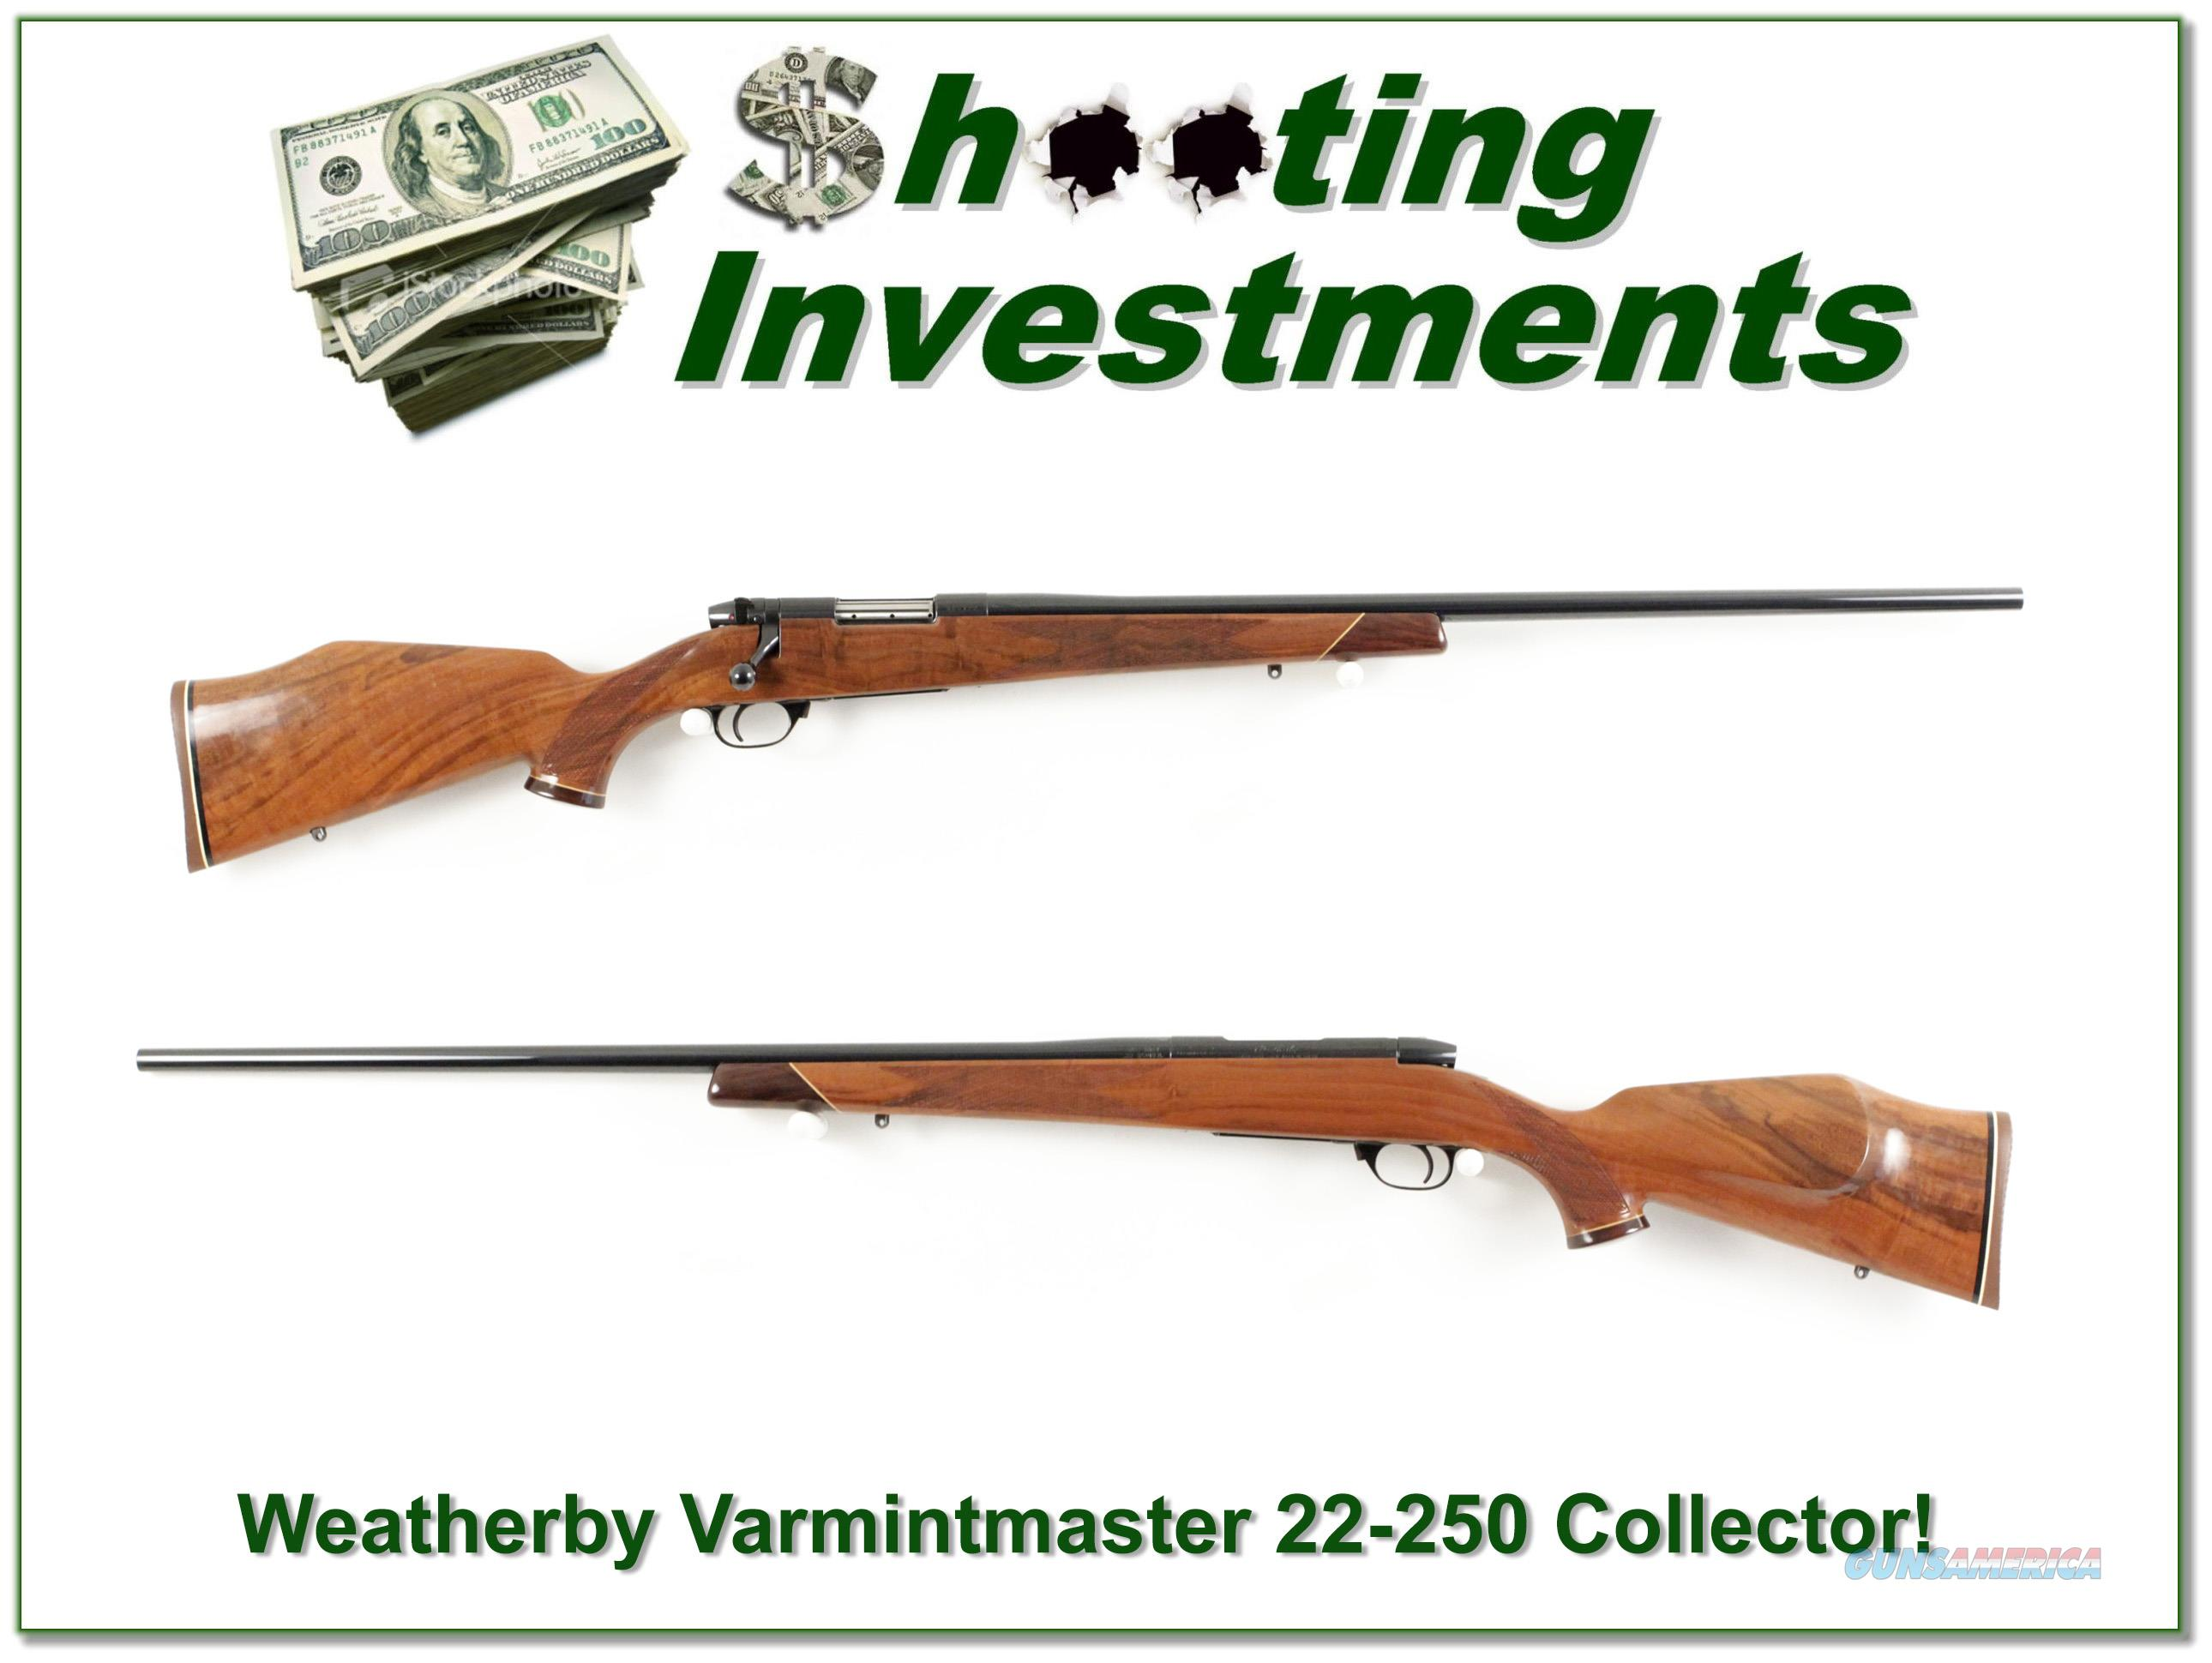 Weatherby Mark V Varmintmaster 22-250 26in Collector!  Guns > Rifles > Weatherby Rifles > Sporting